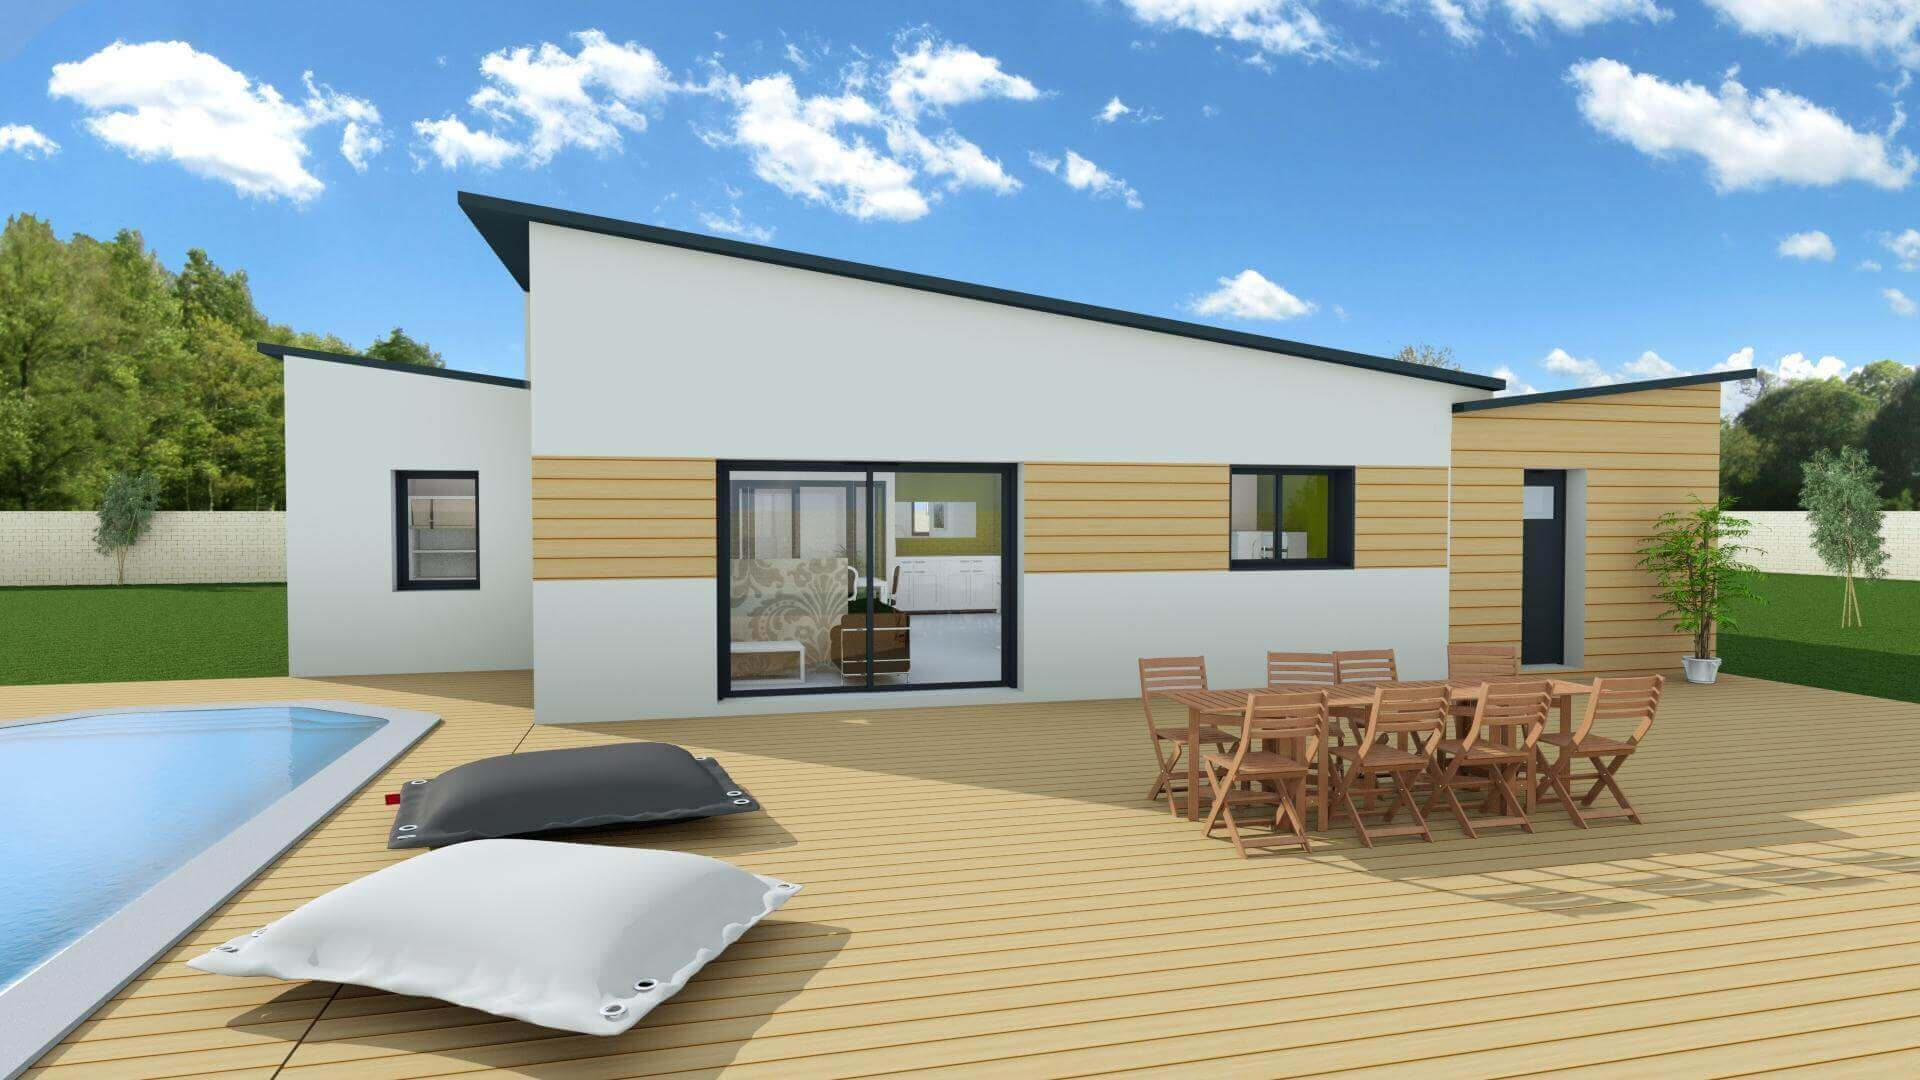 Maison contemporaine 3 chambres sans garage mtc for Constructeur maisons contemporaines